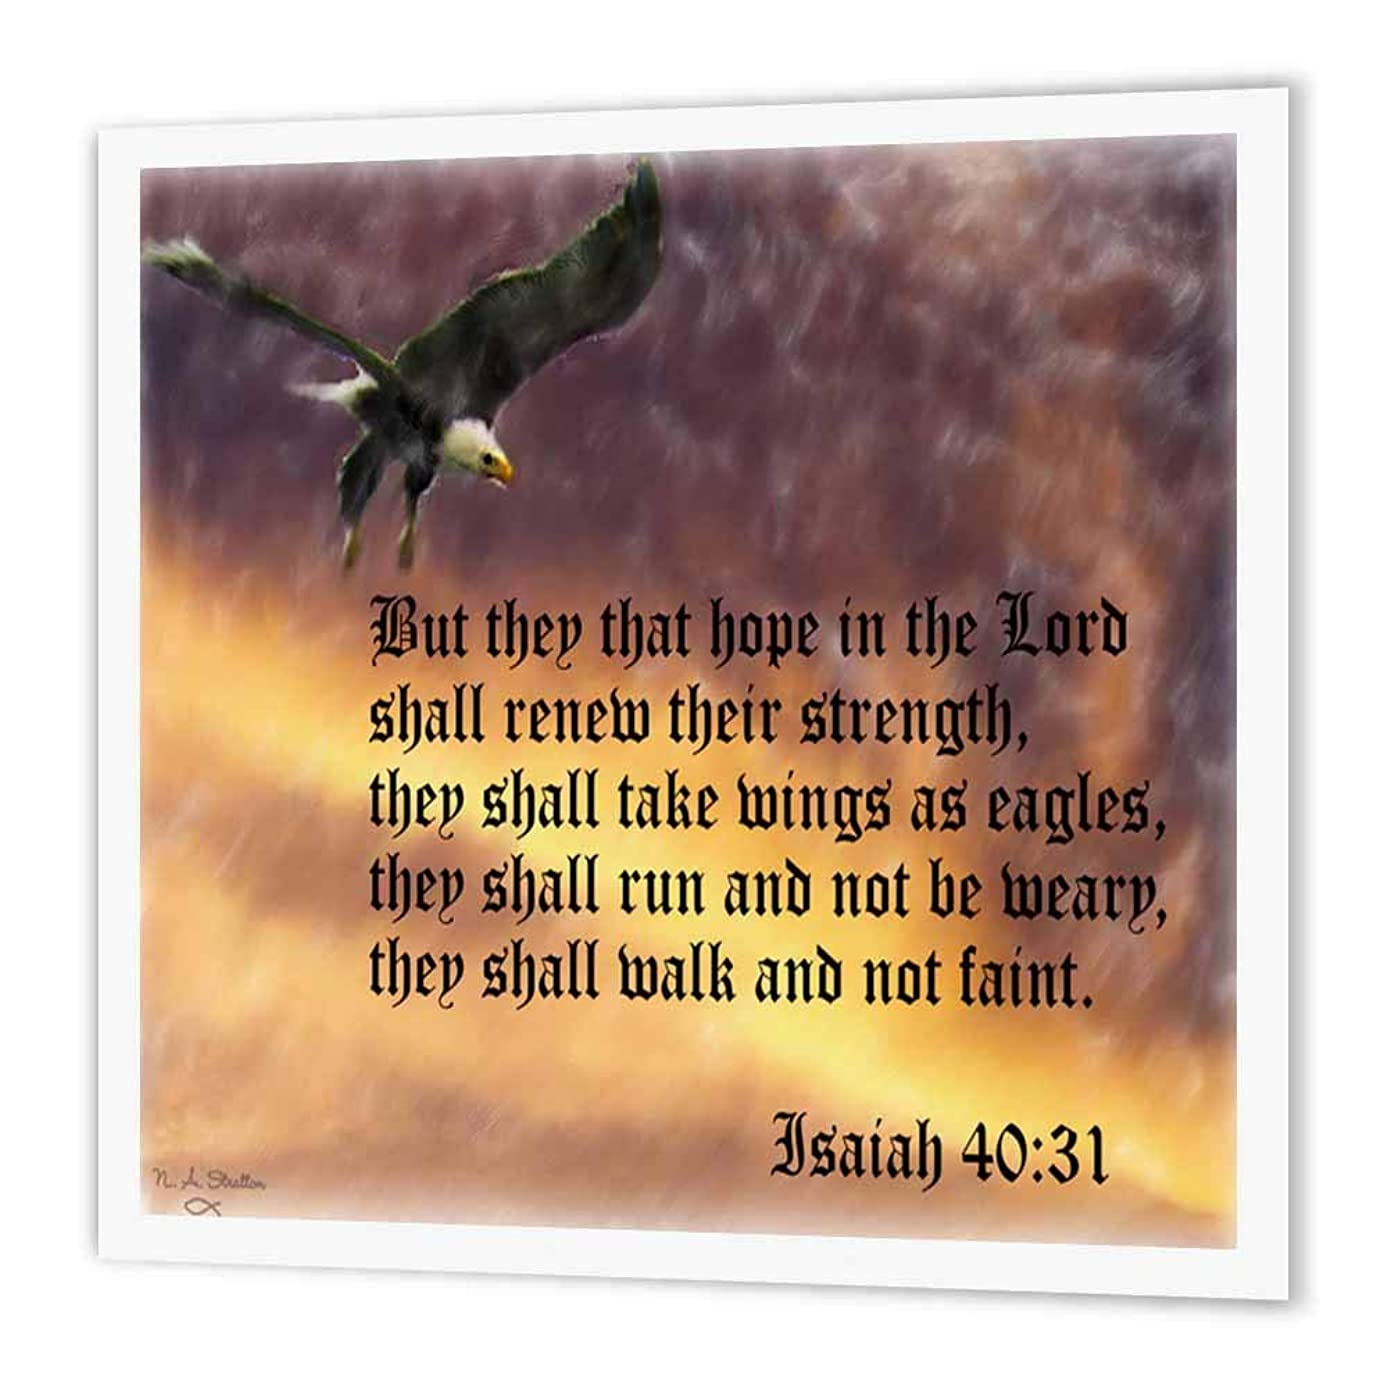 3dRose ht_27419_3 Isaiah 40-31 Bible Verse with Eagle Against a Troubled Sky-Iron on Heat Transfer Paper for White Material, 10 by 10-Inch